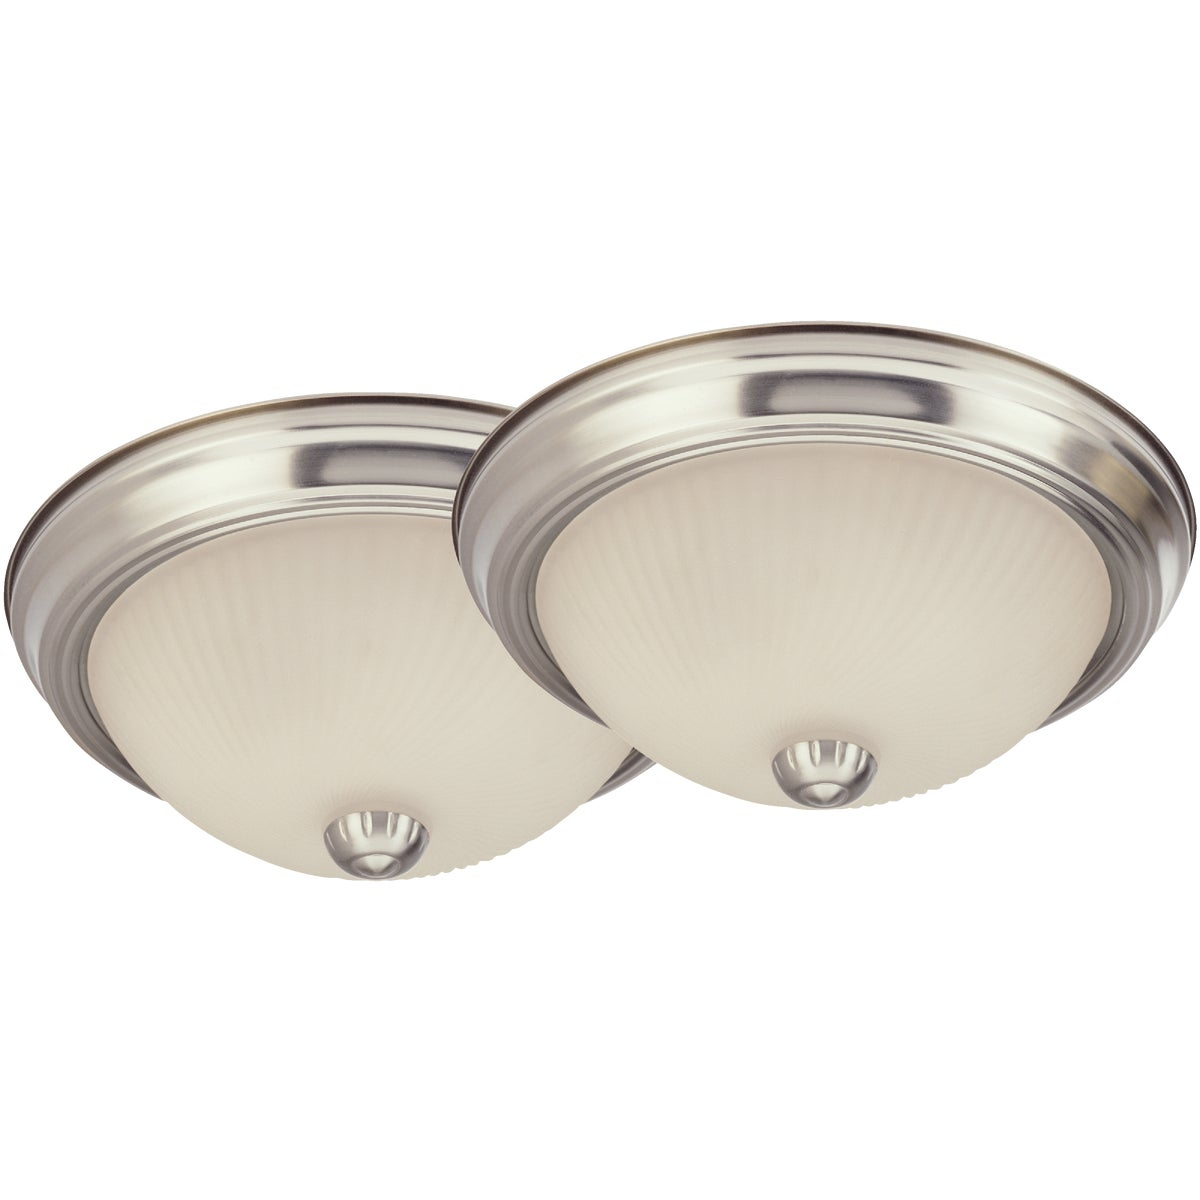 2PK BNKL CEILING FIXTURE - IFM211BNT by Canarm Gs